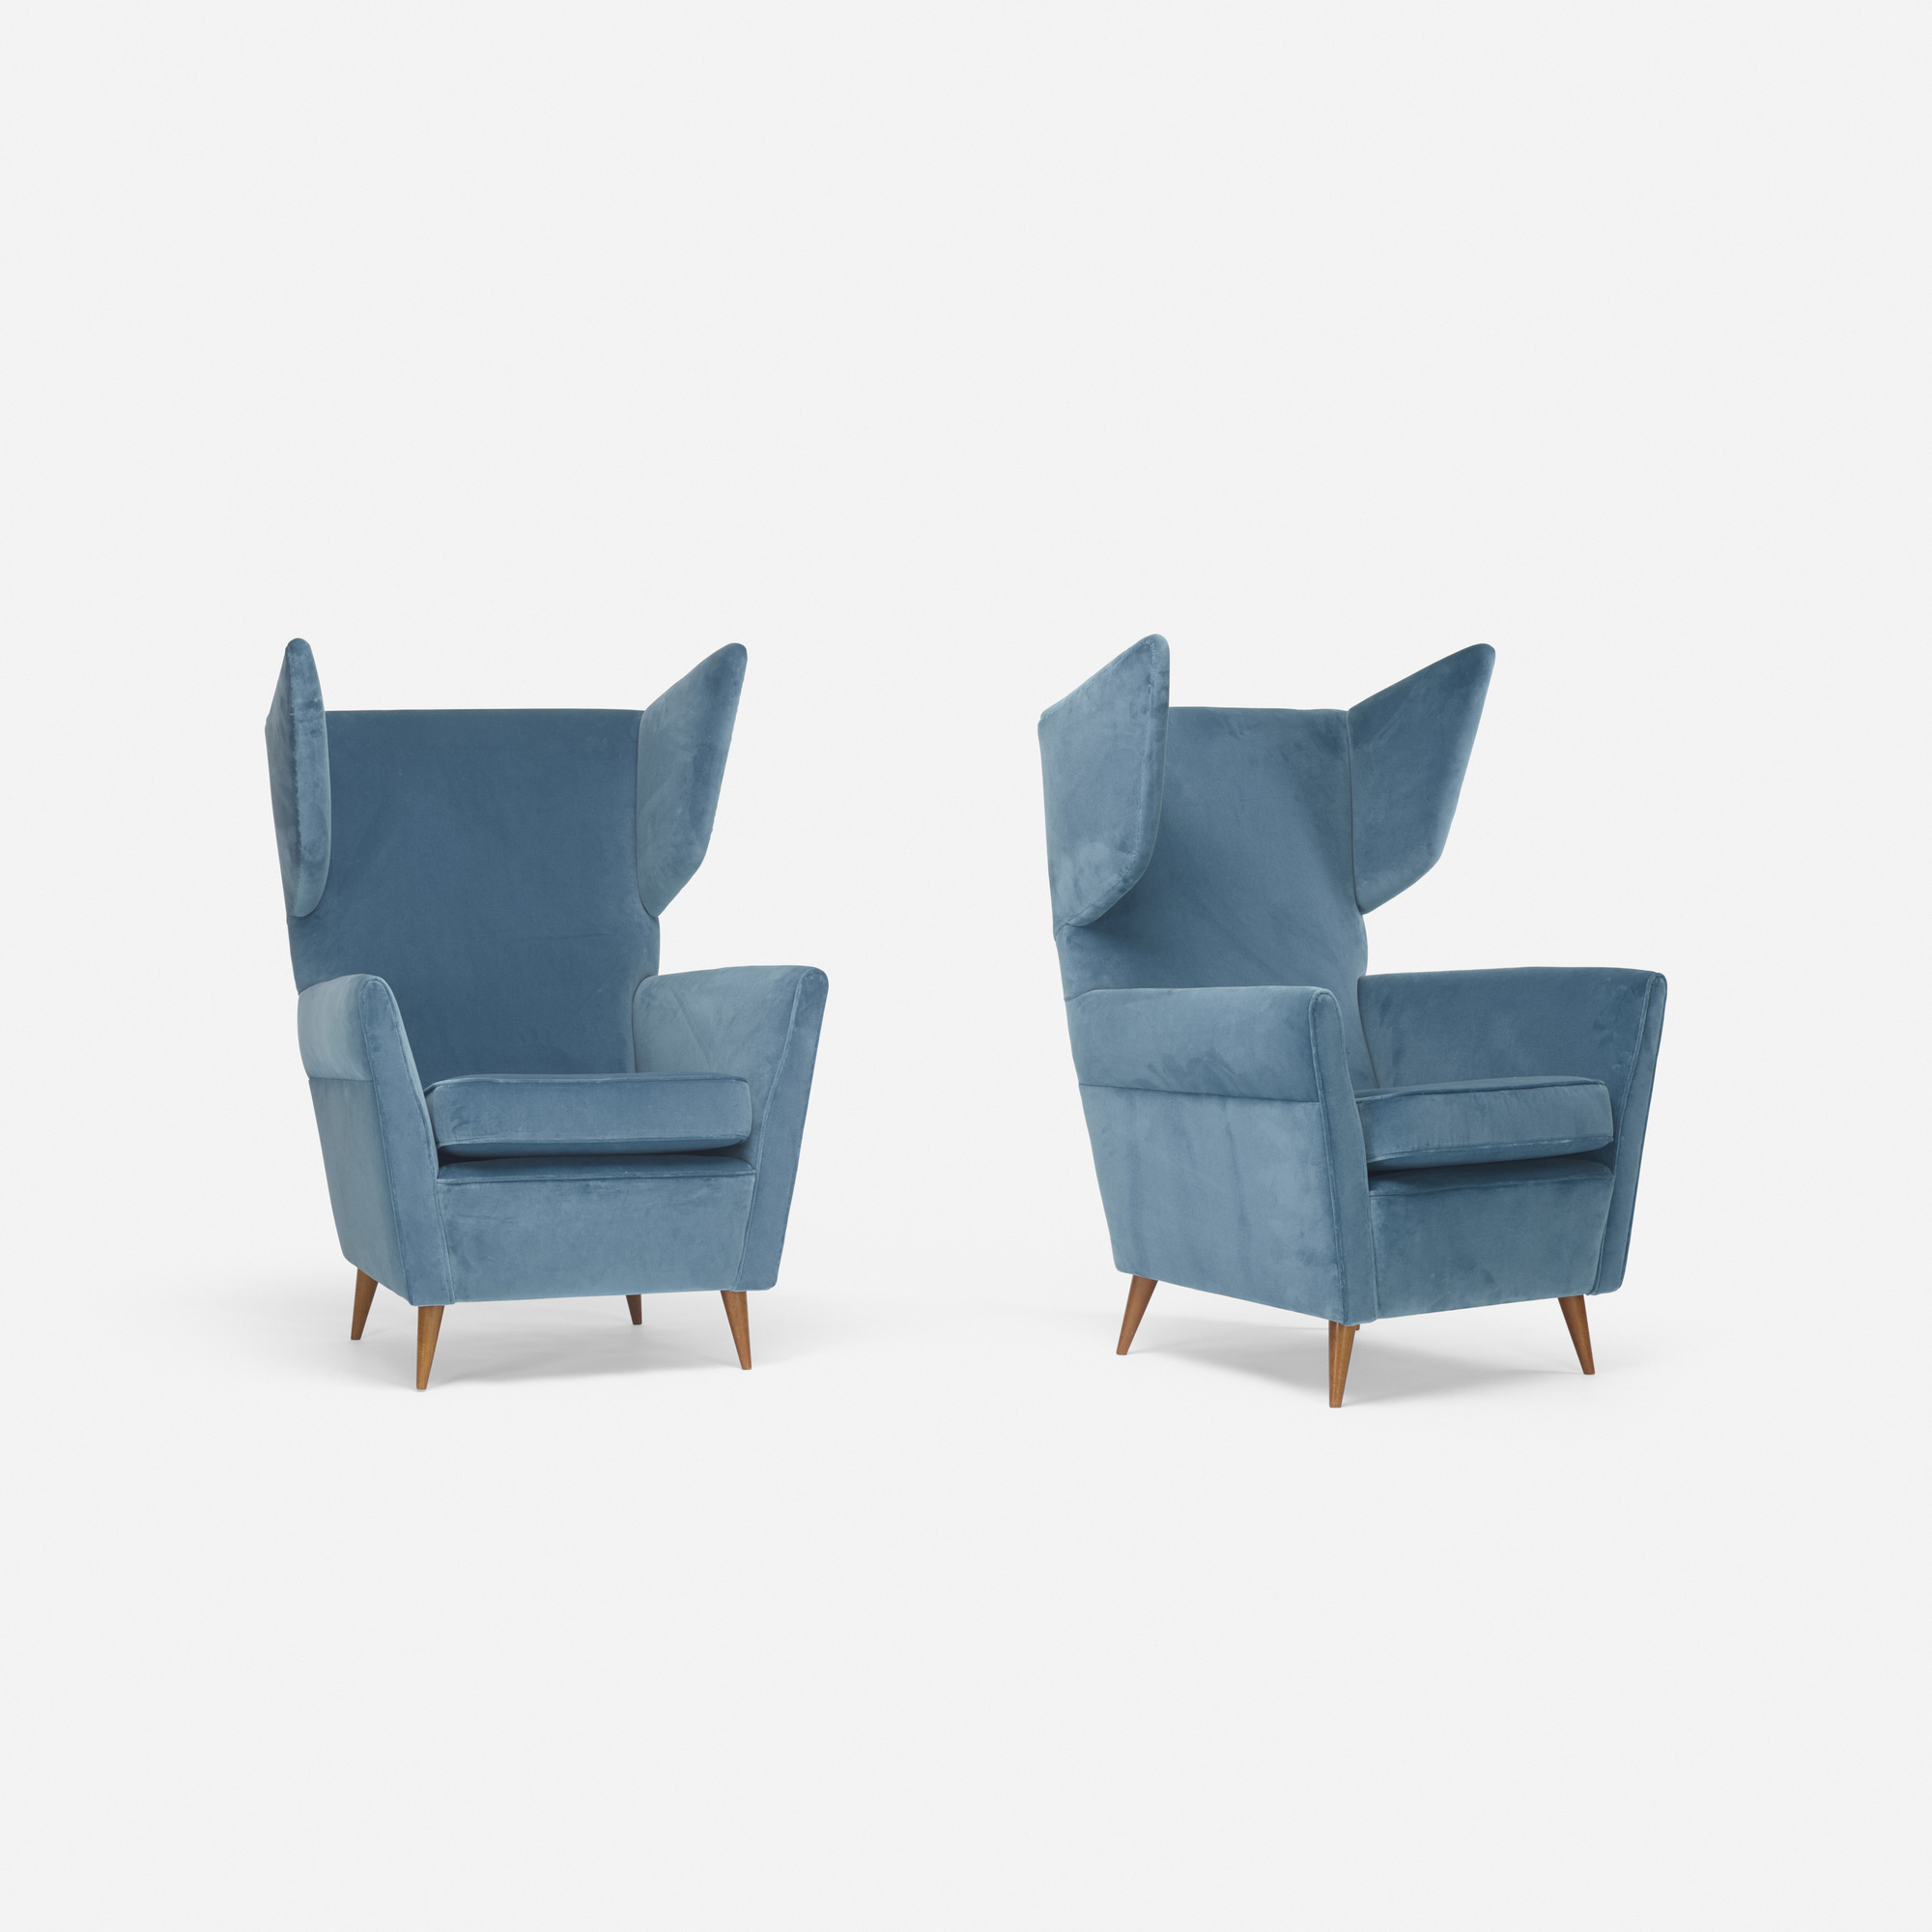 268: Gio Ponti / lounge chairs, pair (2 of 3)